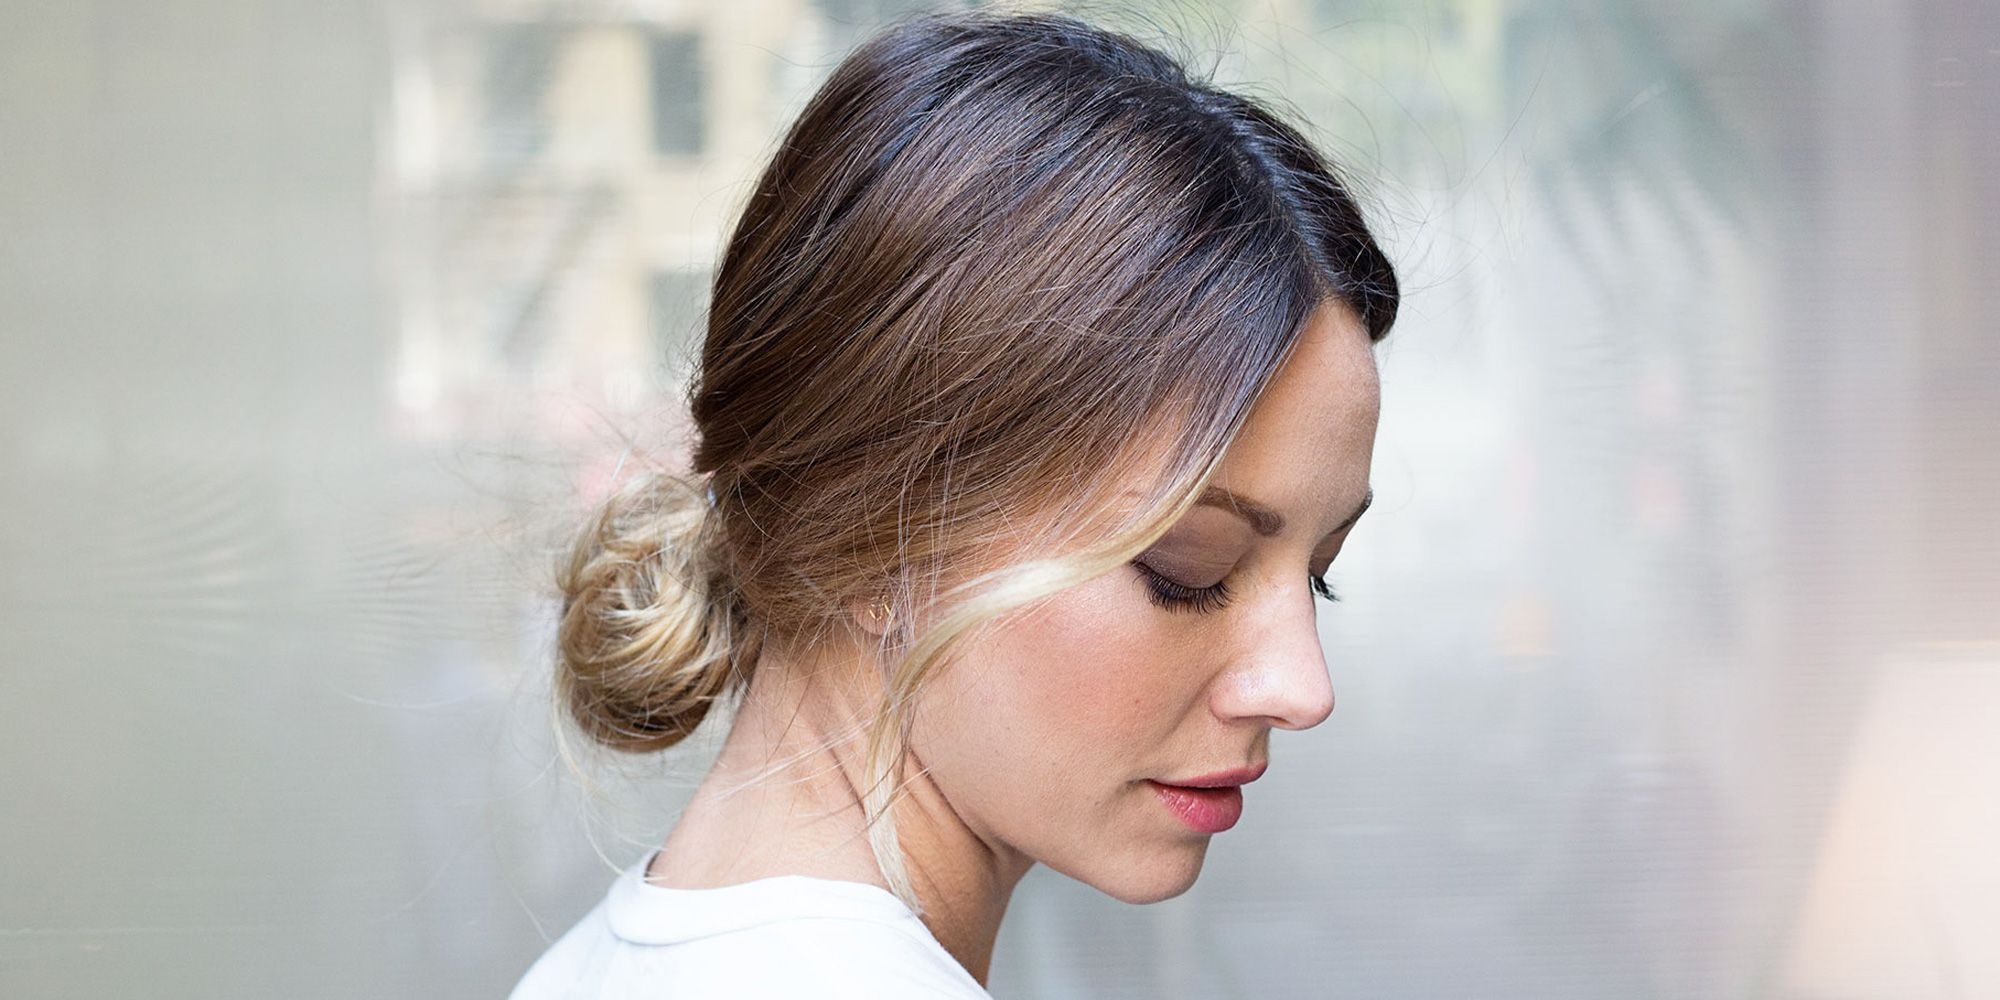 11 Ways To Make Your Bun Look Less Basic Intended For Trendy Medium Haircuts That Cover Your Ears (Gallery 20 of 20)